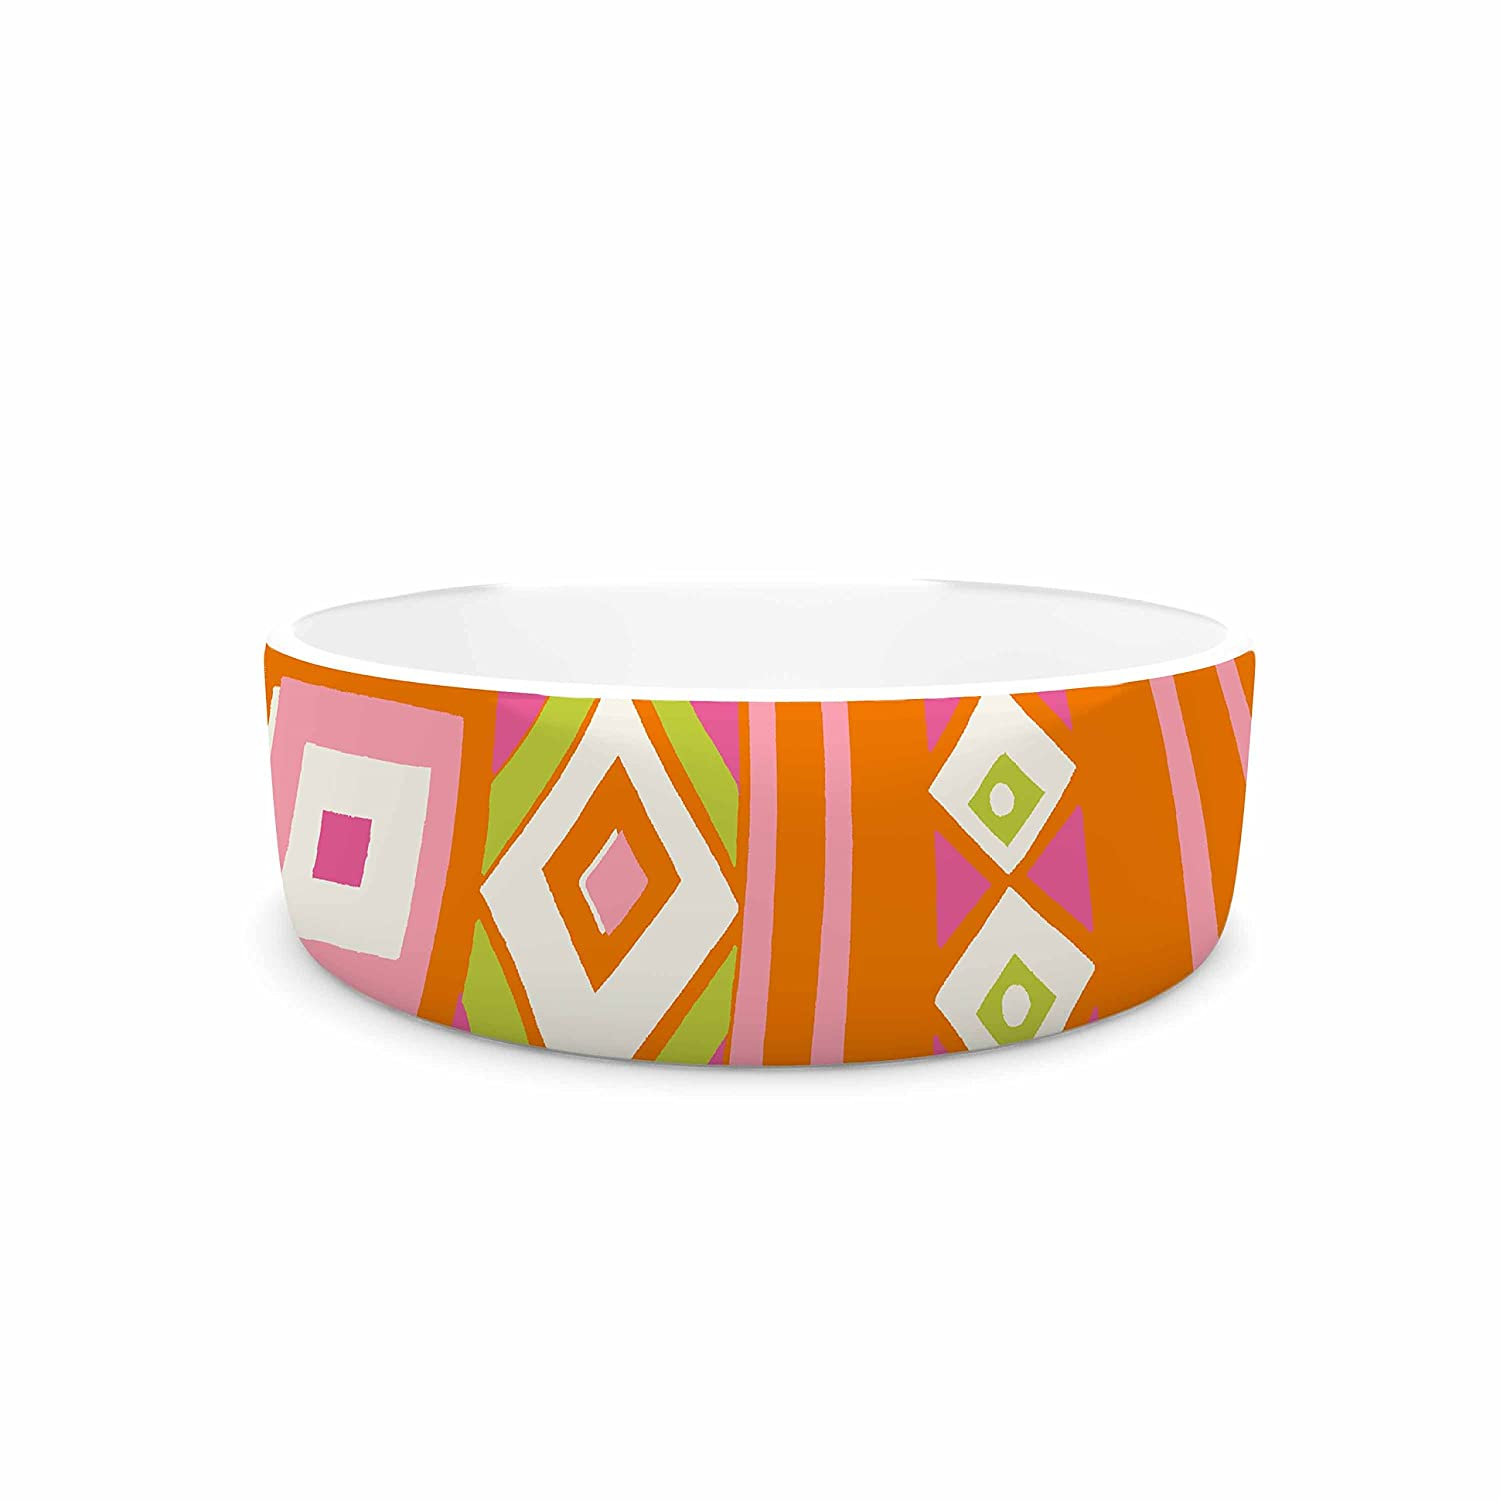 KESS InHouse Jacqueline Milton Heatwave-Hot orange Pink Illustration Pet Bowl, 4.75  Diameter